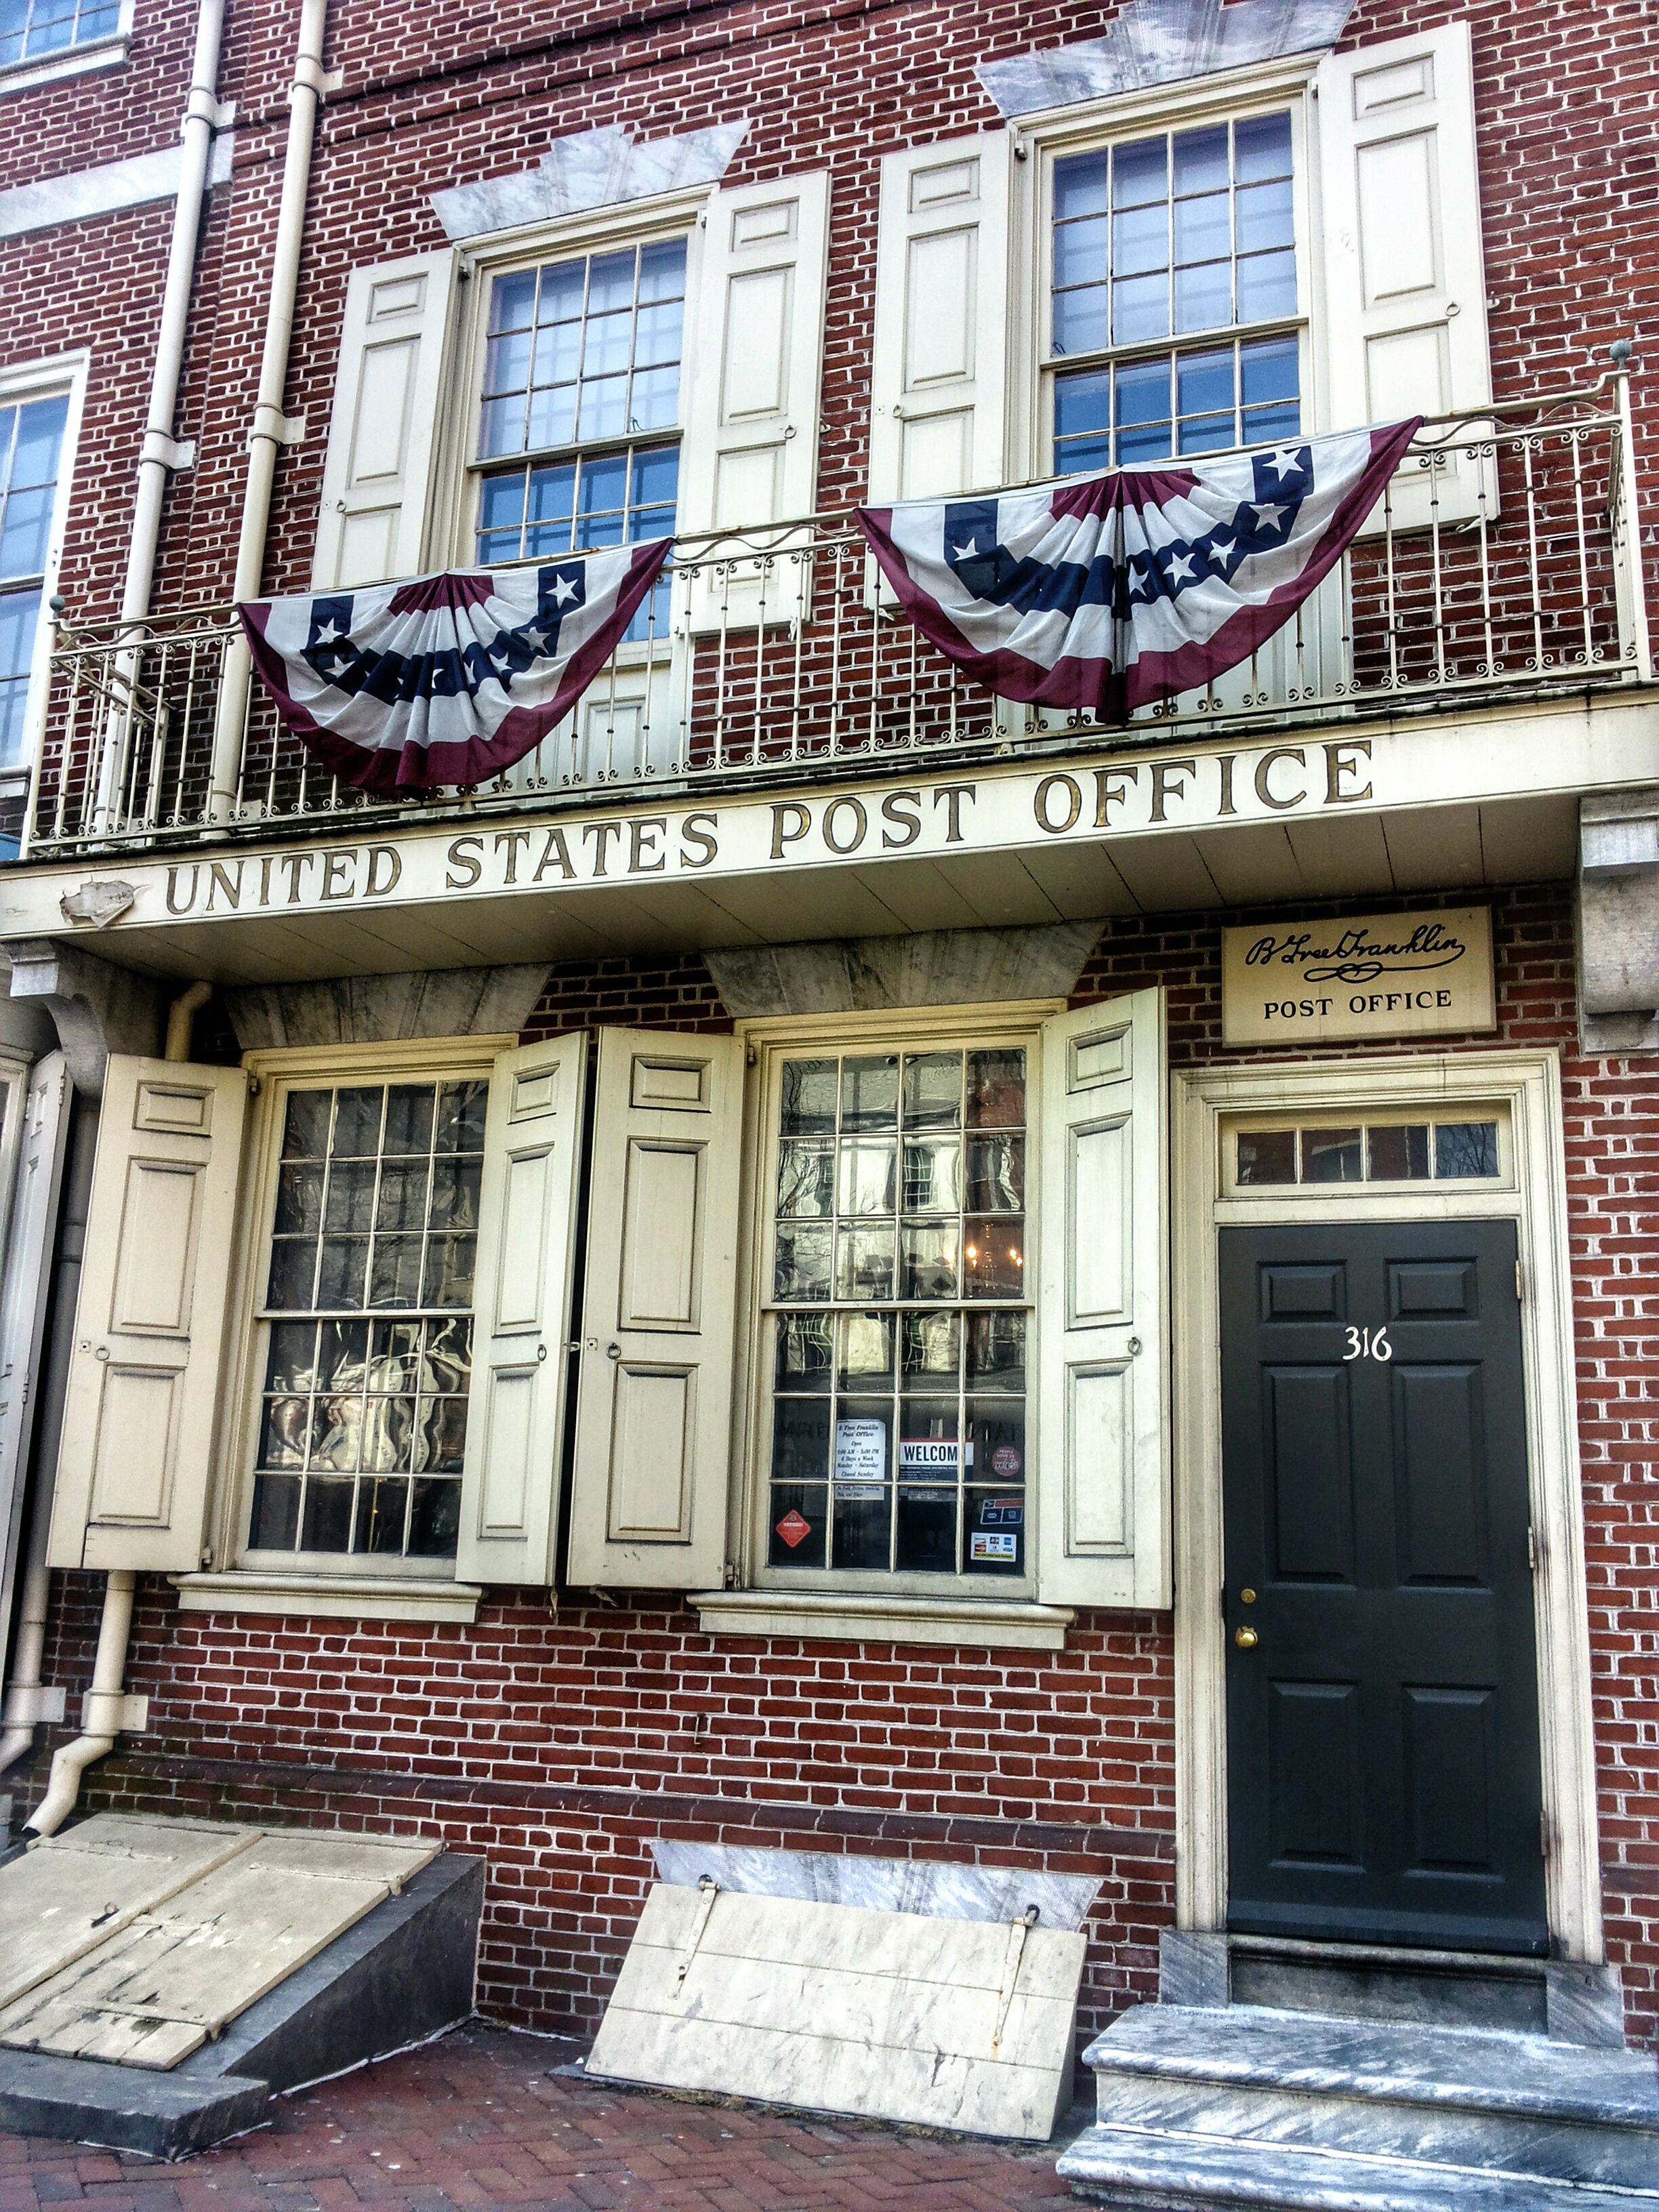 Benjamin Franklin Post Office In Philadelphia.